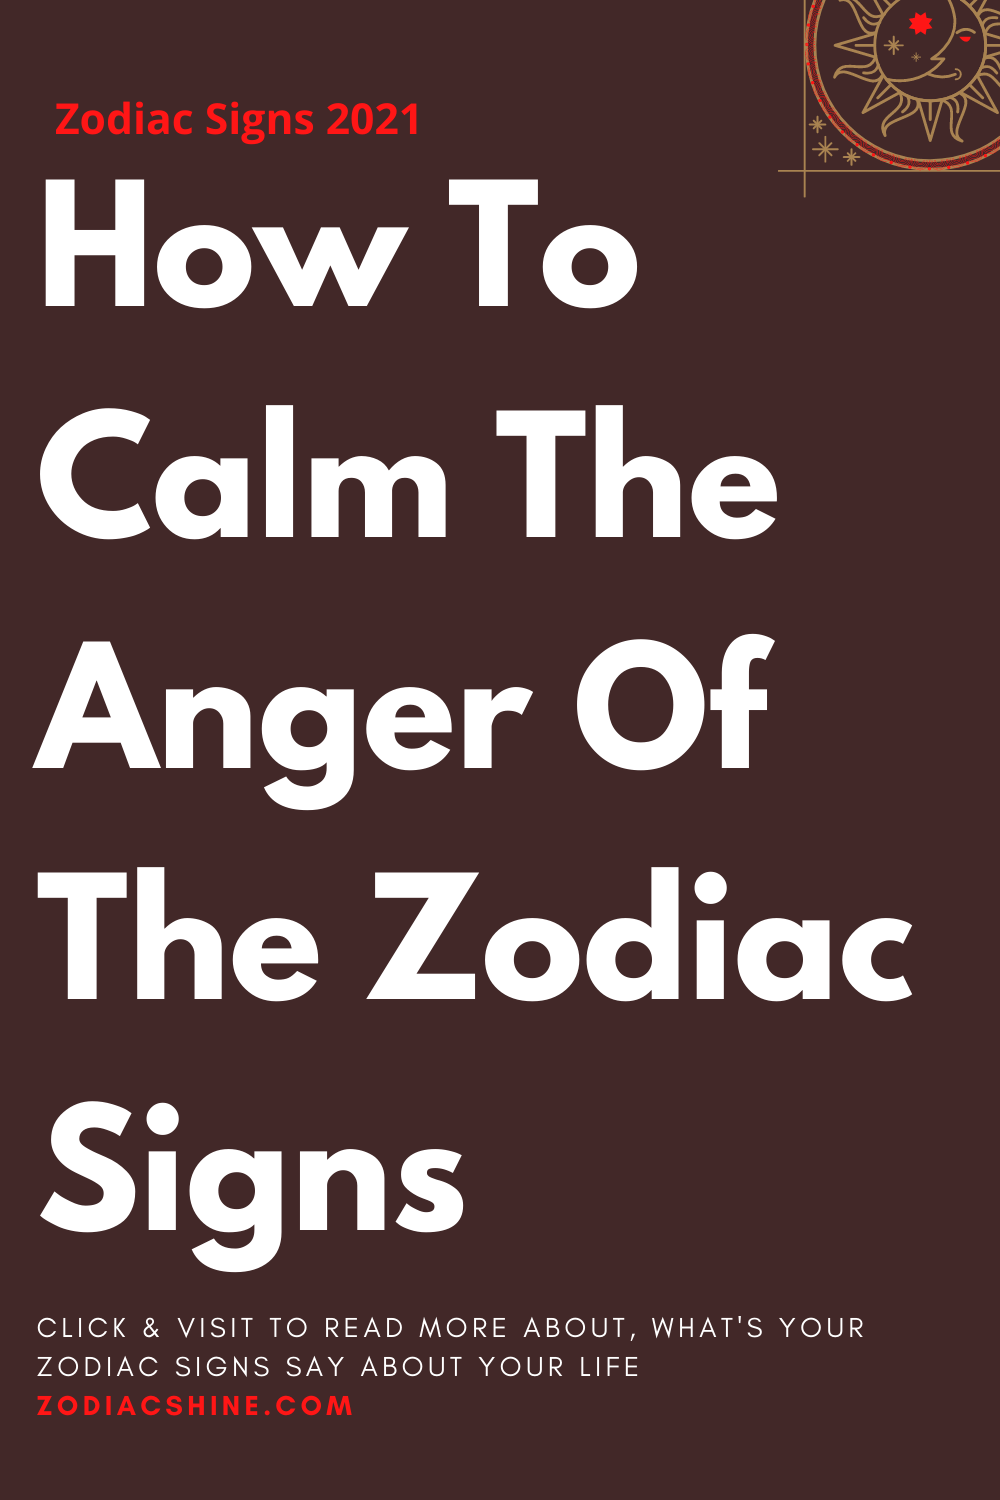 How To Calm The Anger Of The Zodiac Signs